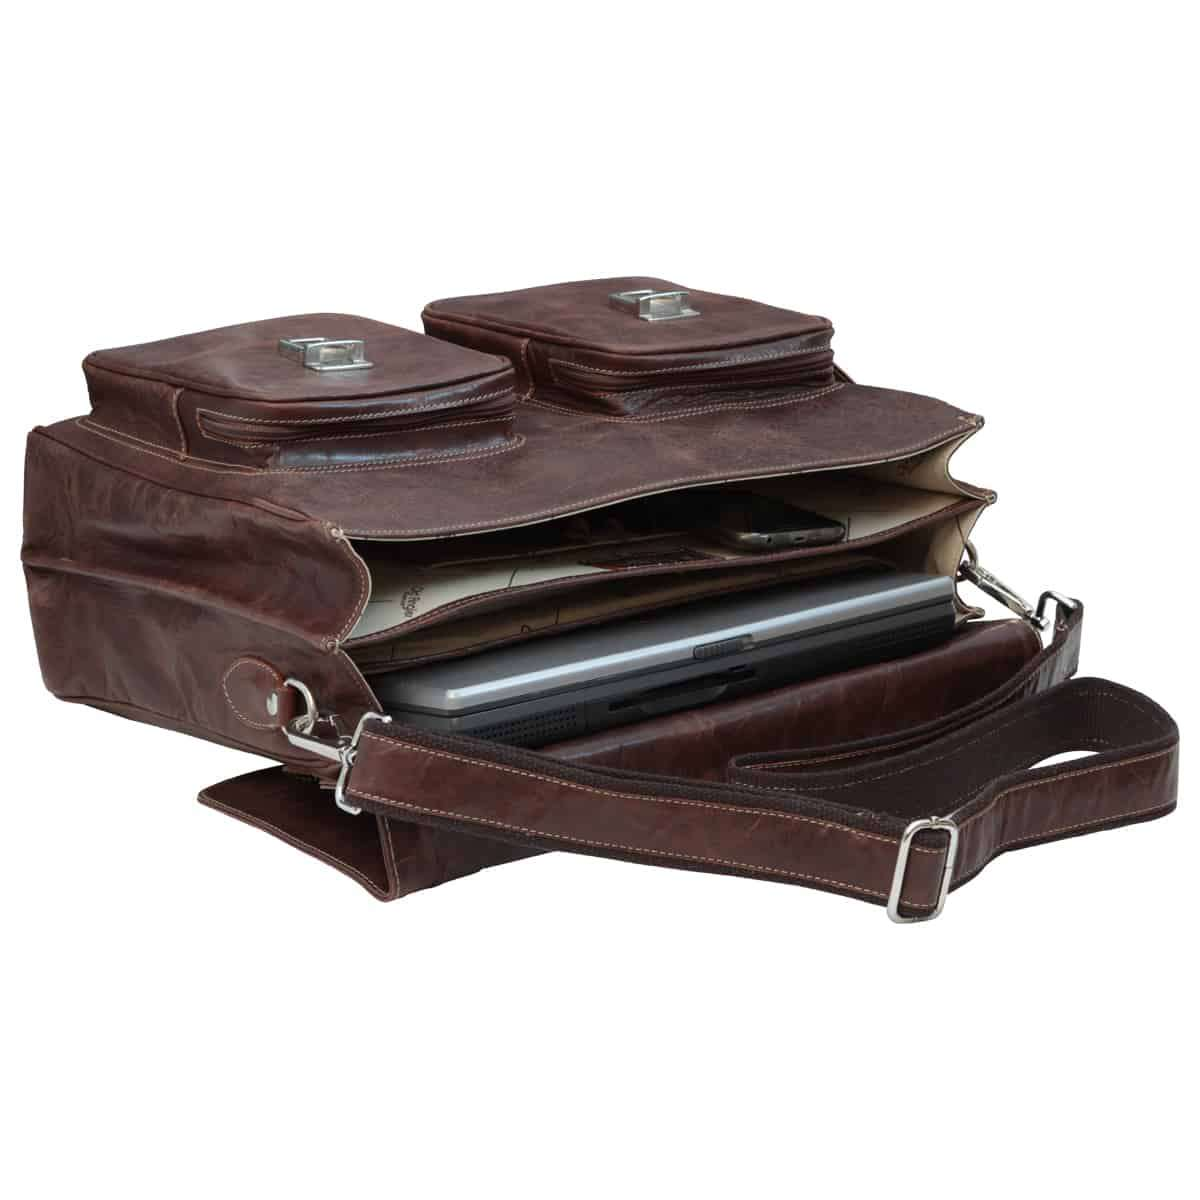 Oiled Calfskin Leather Briefcase with two clasp closure - Chestnut | 074361CA E | Old Angler Firenze